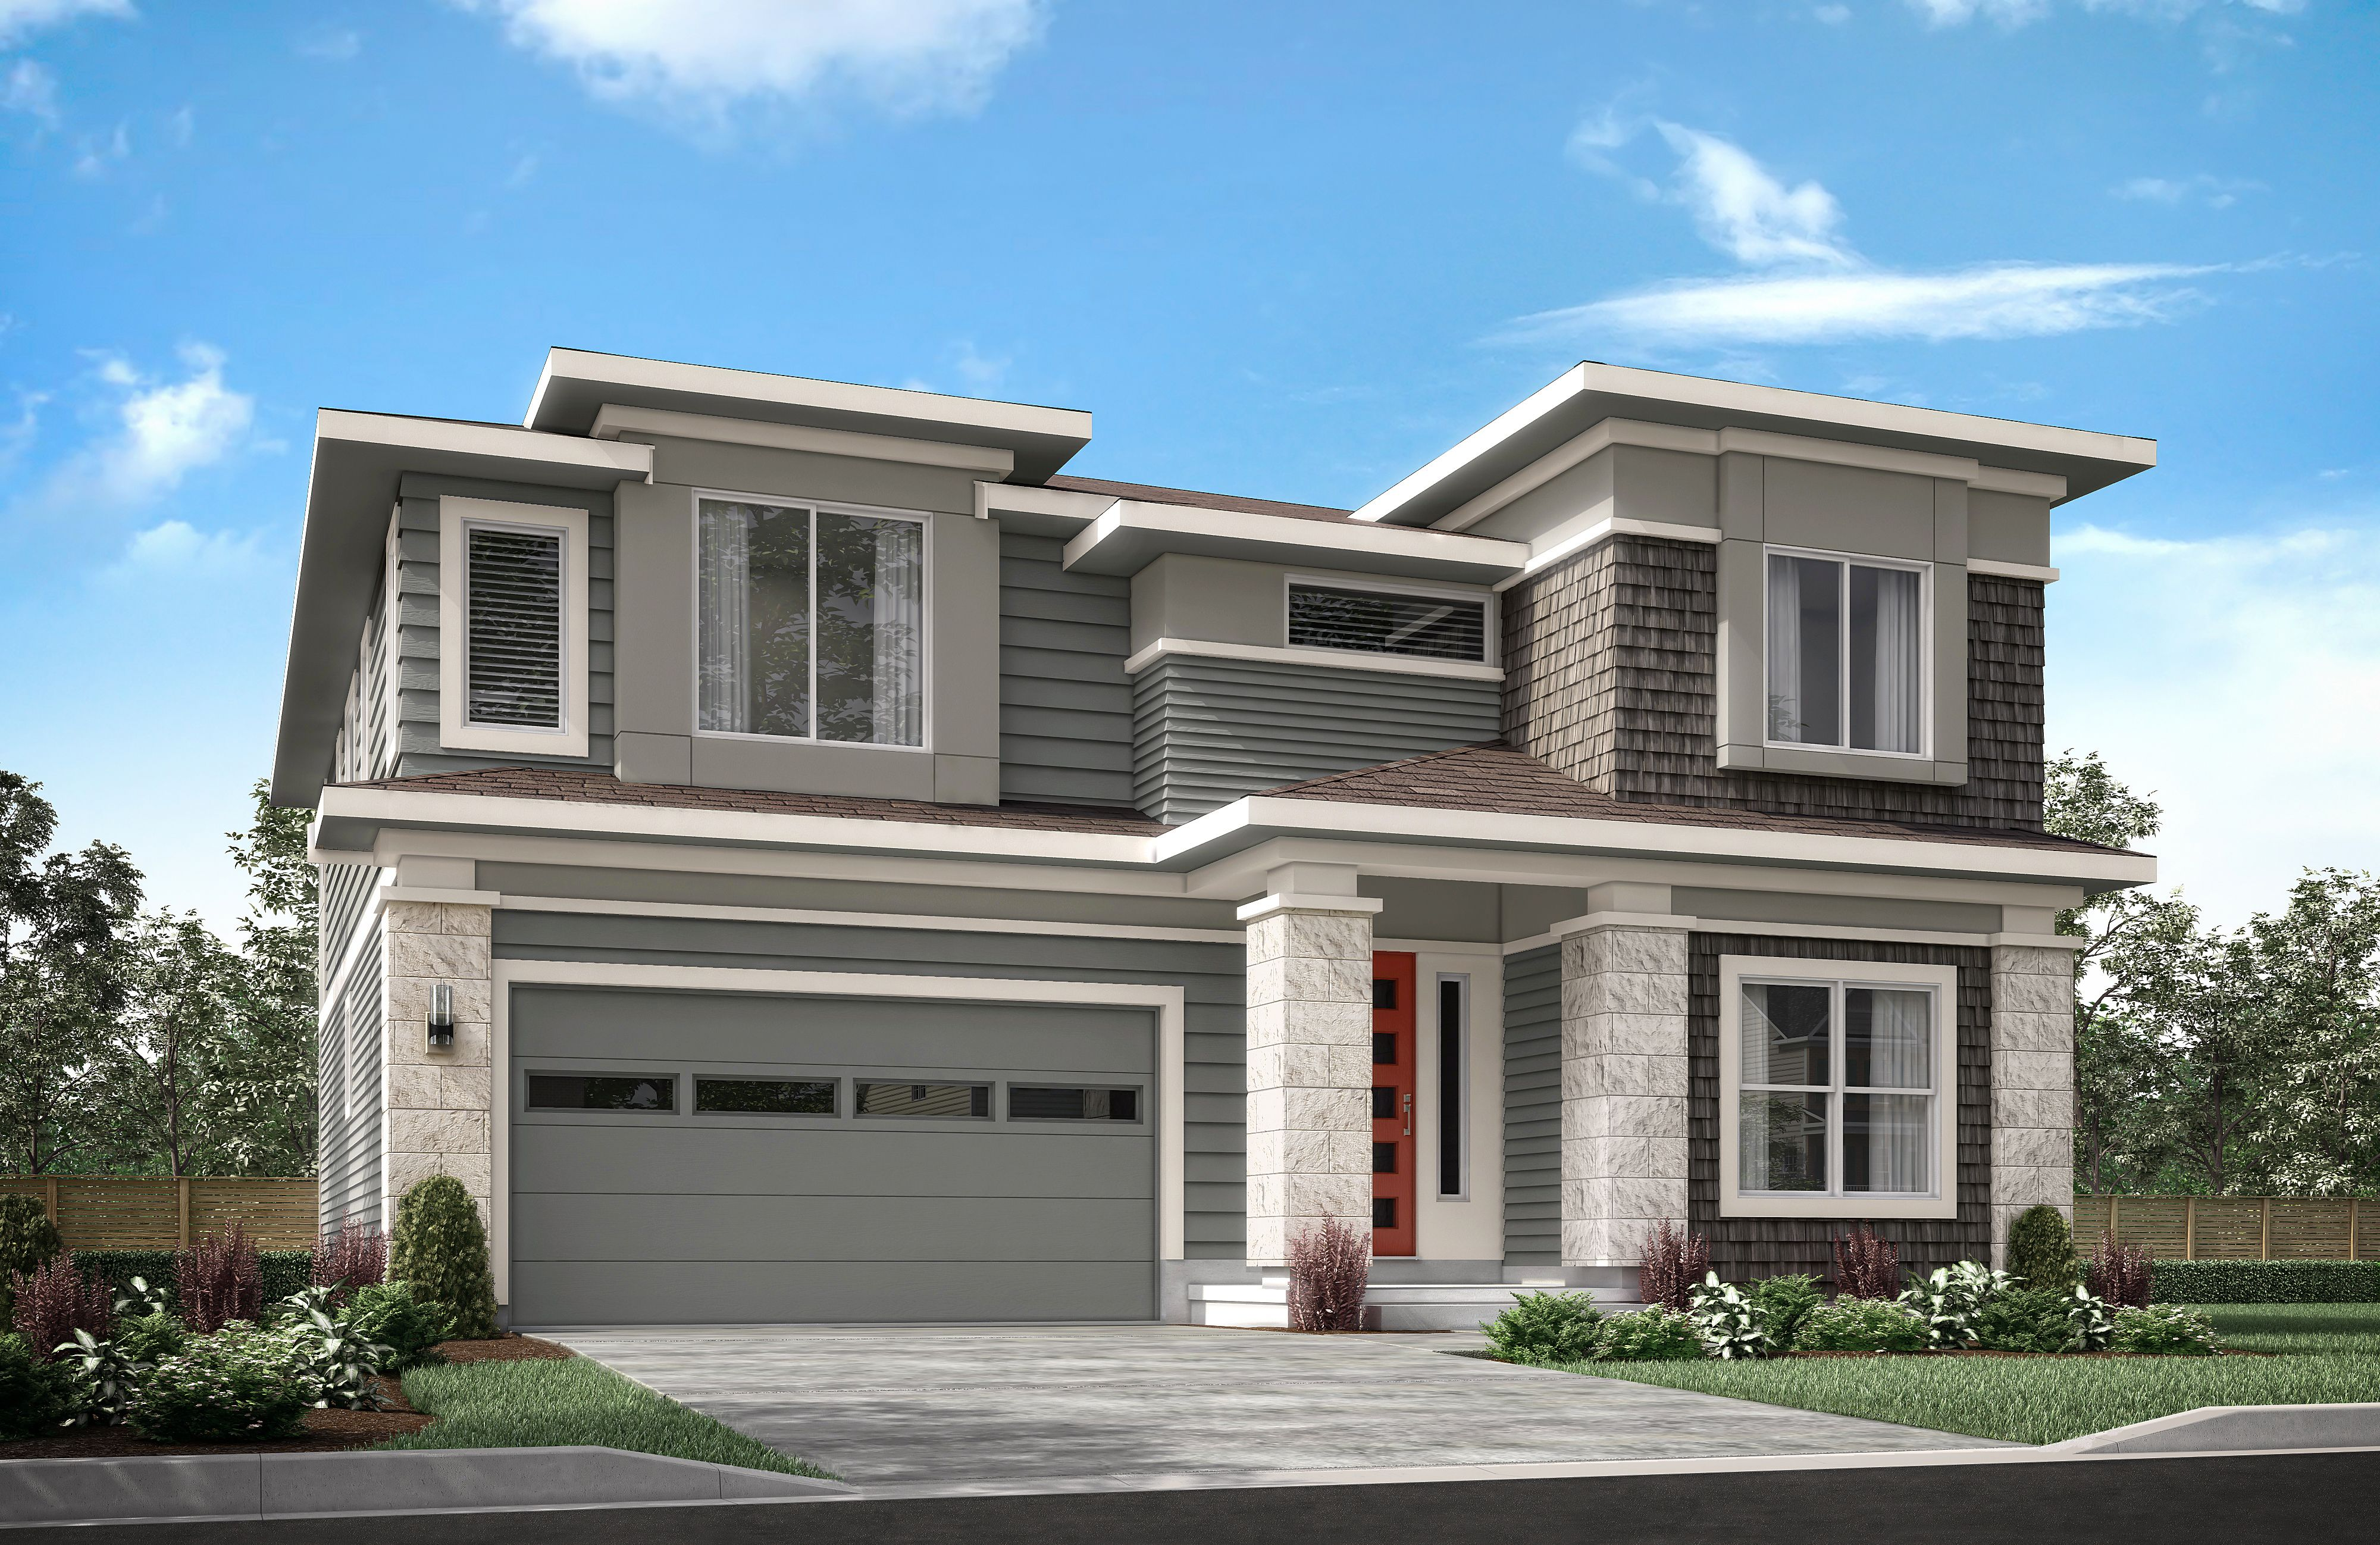 Search lake sawyer new homes find new construction in for New homes seattle washington area